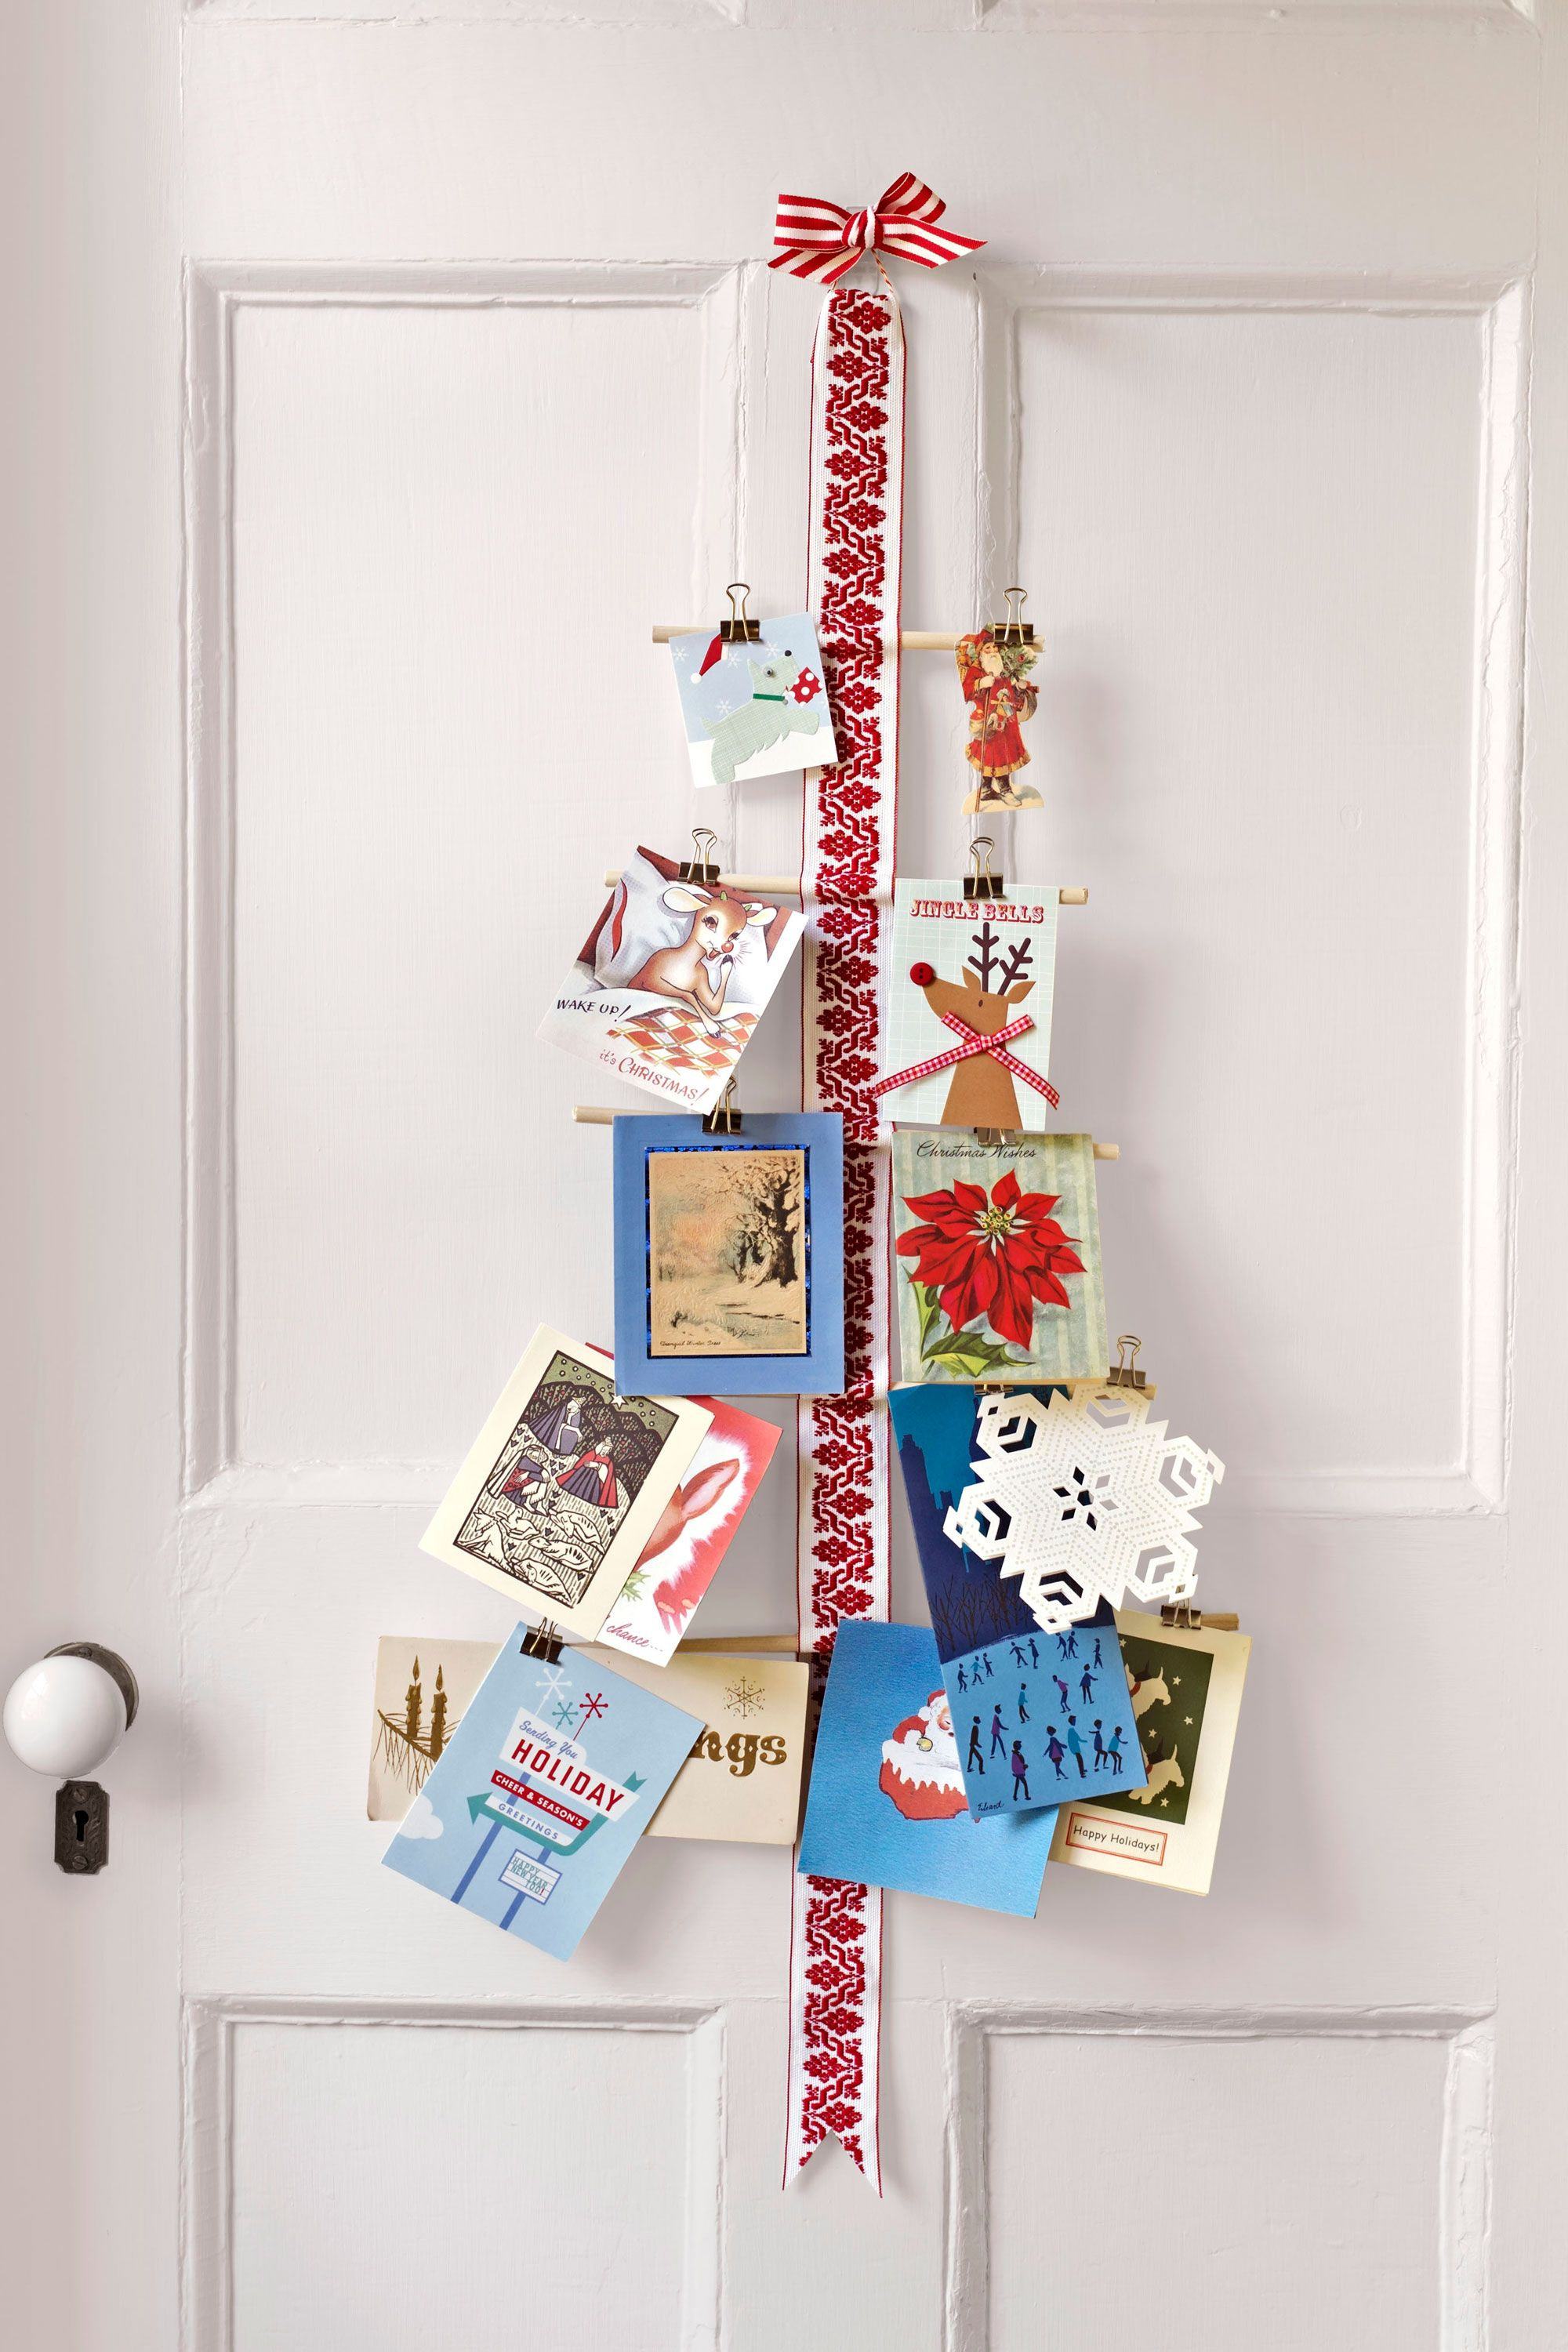 35 DIY Christmas Decorations That Are Merry and Bright | Holidays ...